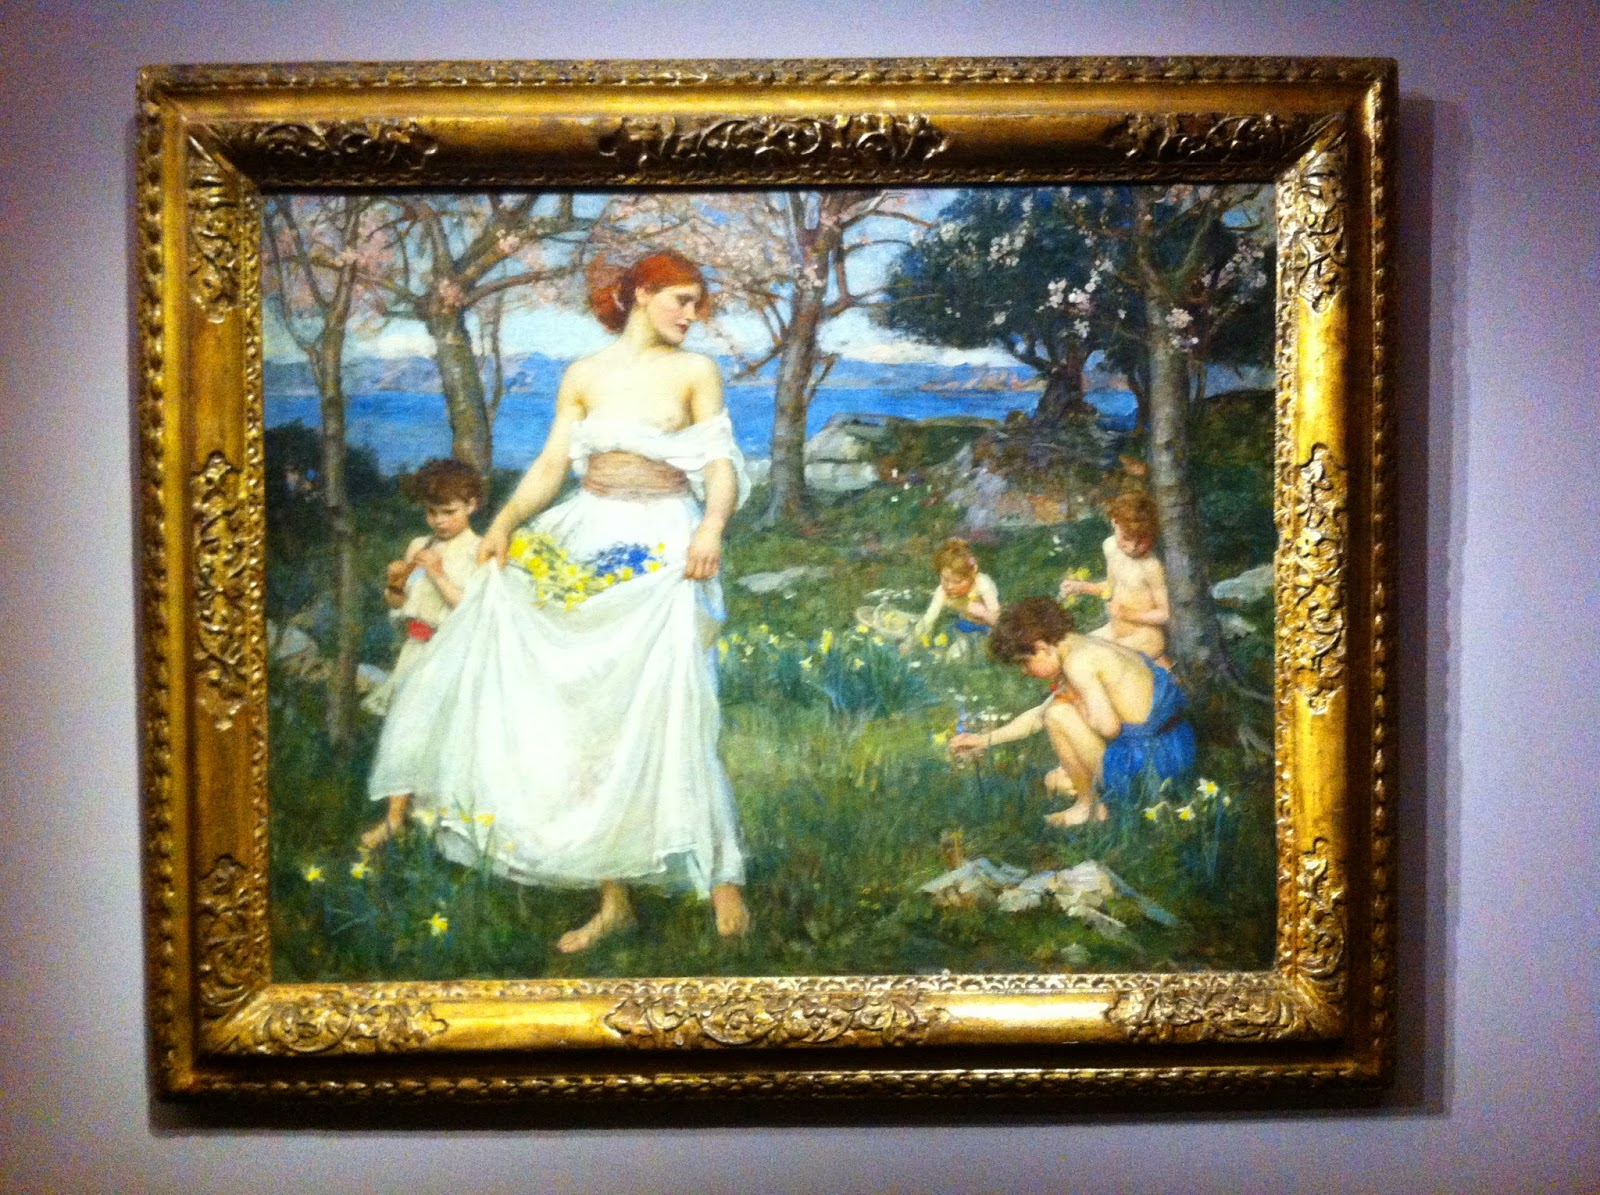 Waterhouse, Le chant du printemps